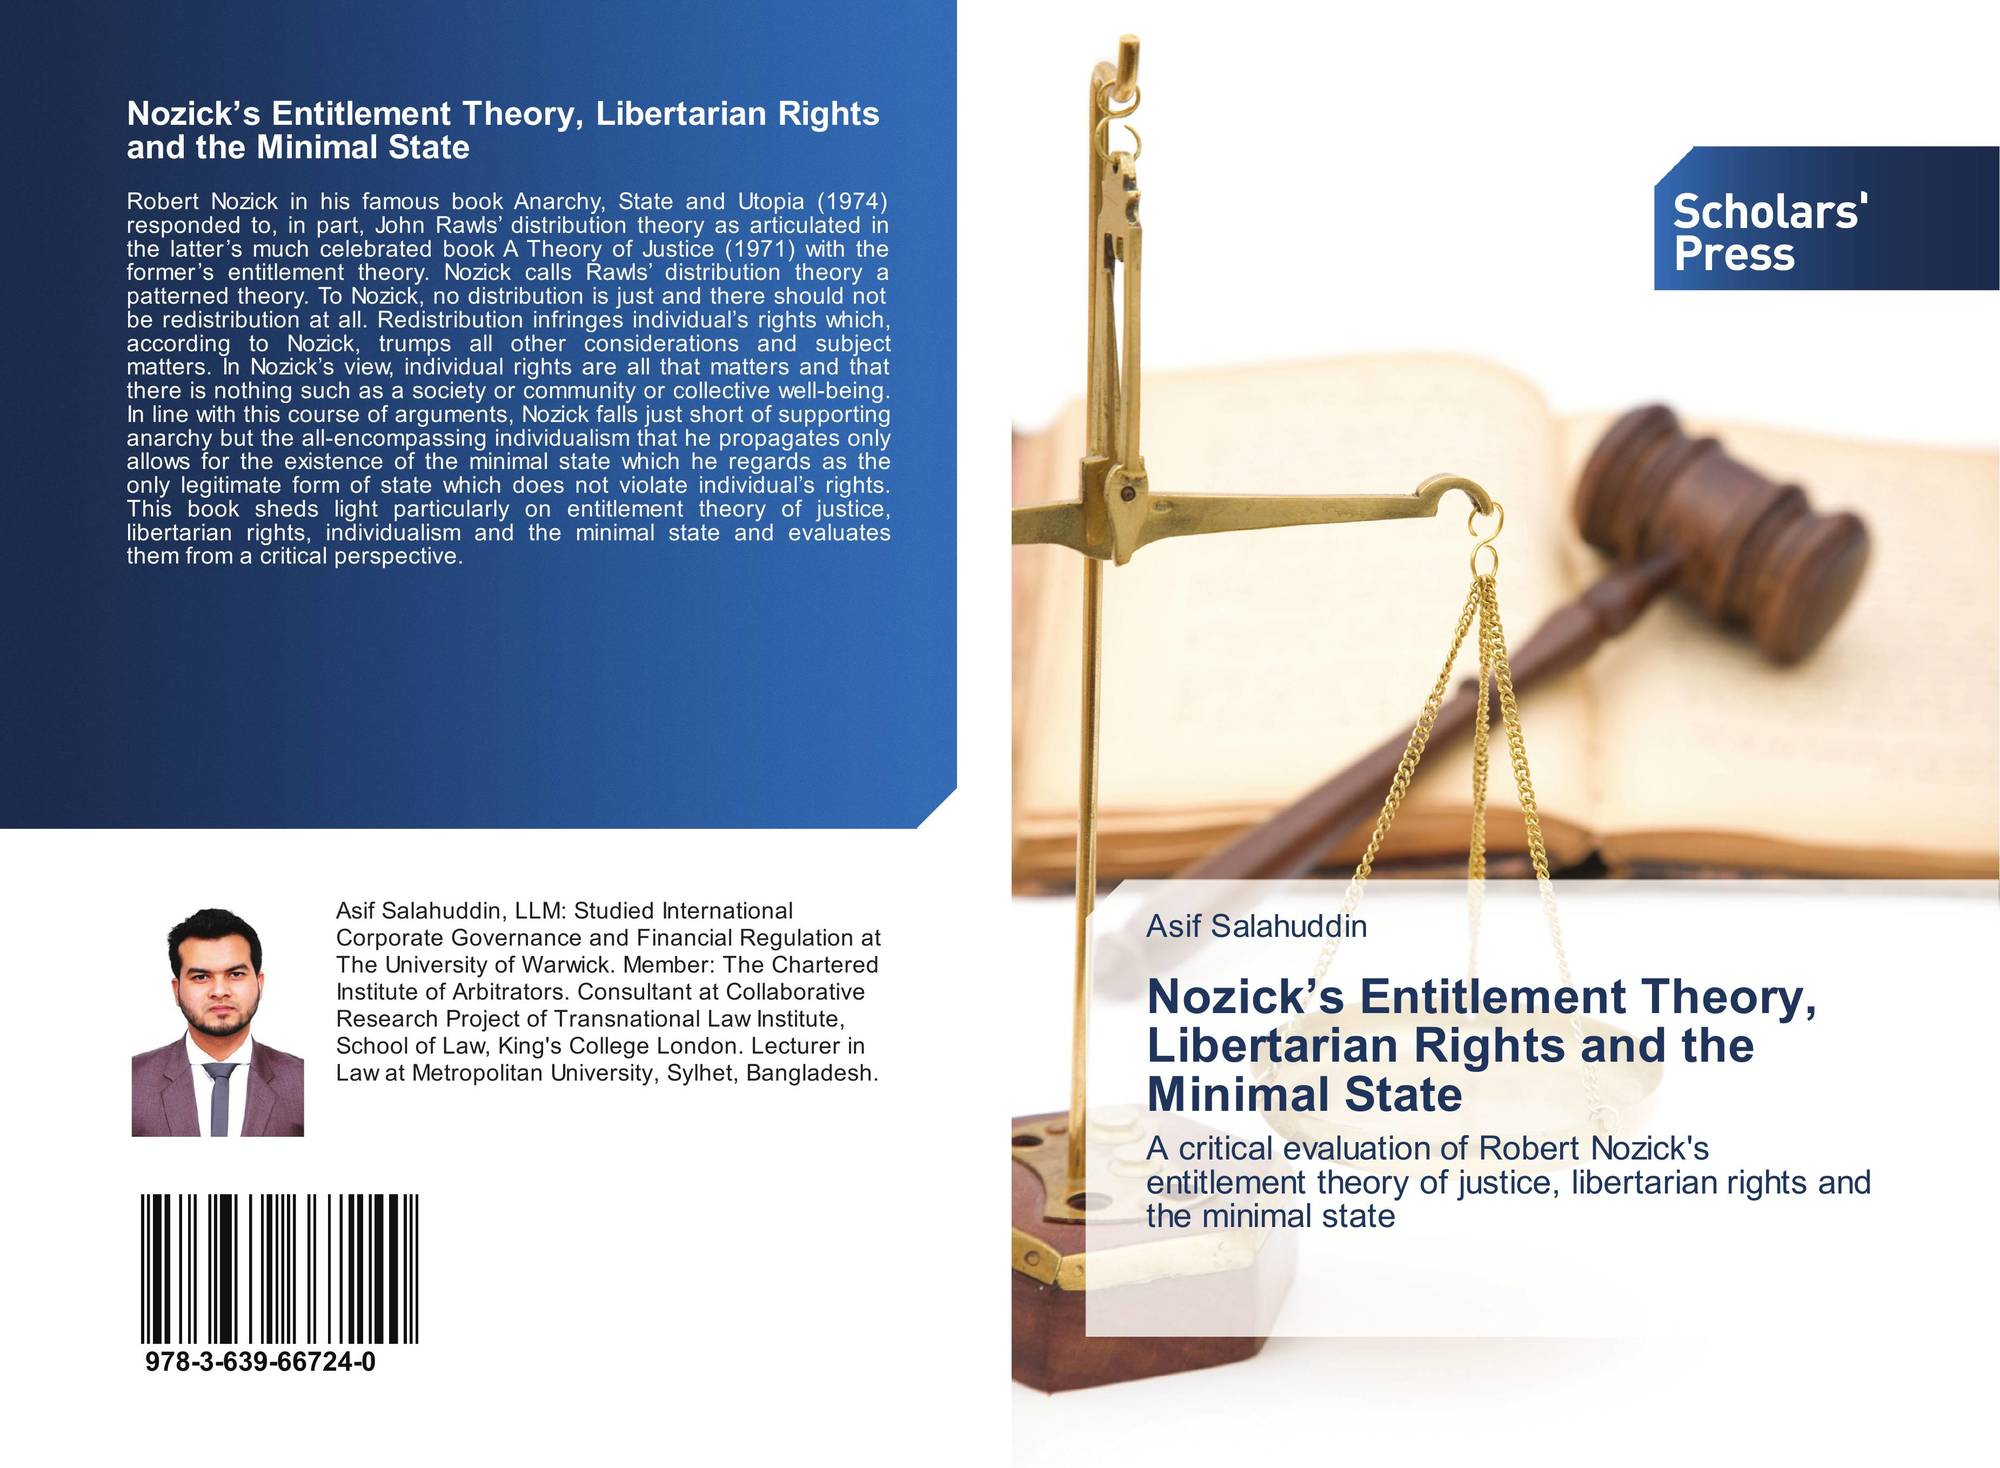 a description of the rights and entitlement theory by robert nozick Robert nozick , libertarianism to understand this we must make a brief detour through nozick's theory of but superimposed upon this structure of rights.